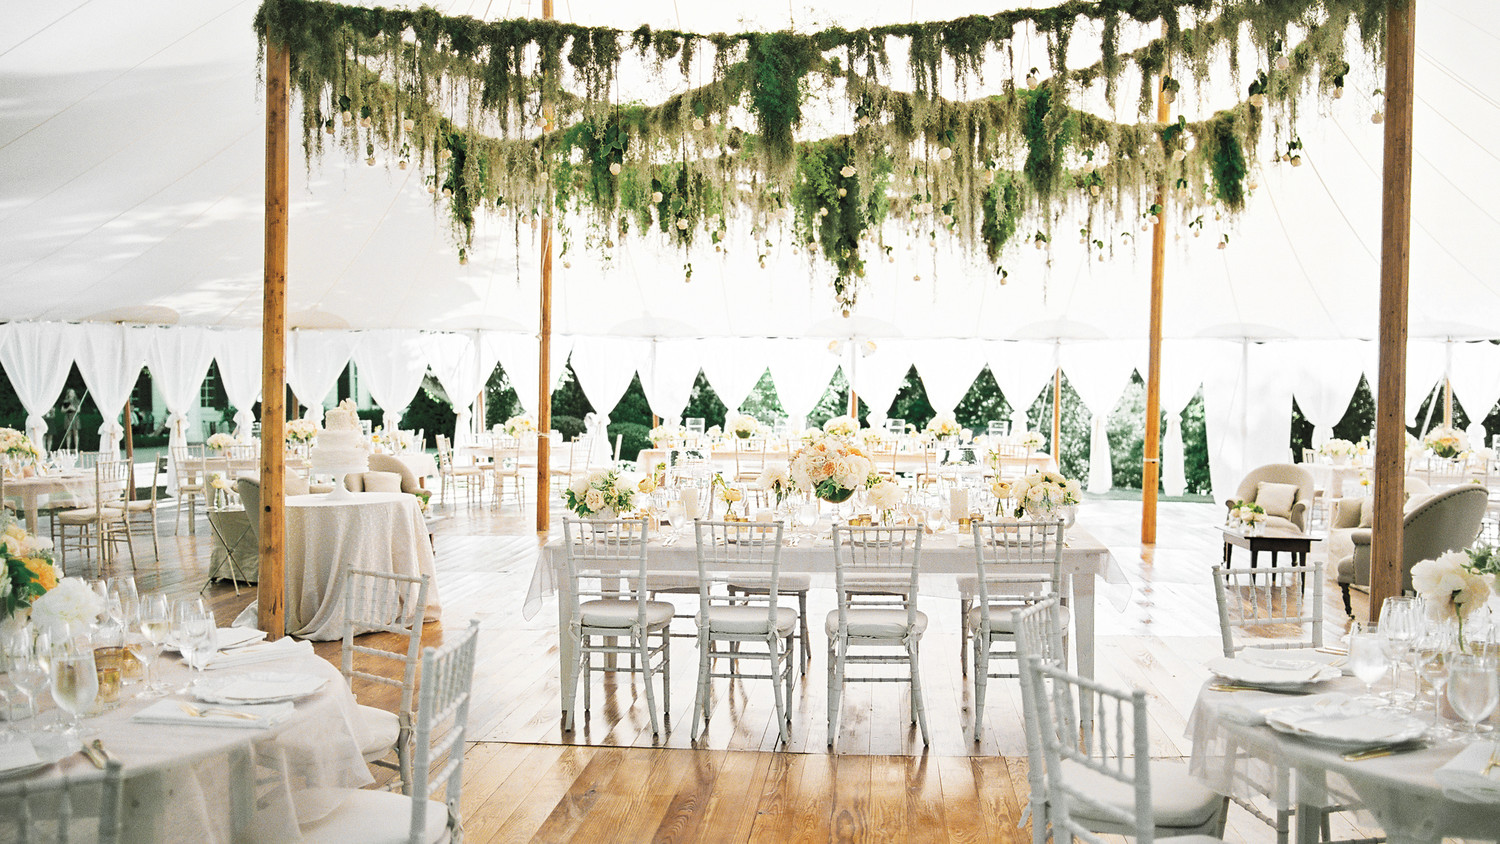 28 tent decorating ideas that will upgrade your wedding reception 28 tent decorating ideas that will upgrade your wedding reception martha stewart weddings junglespirit Image collections